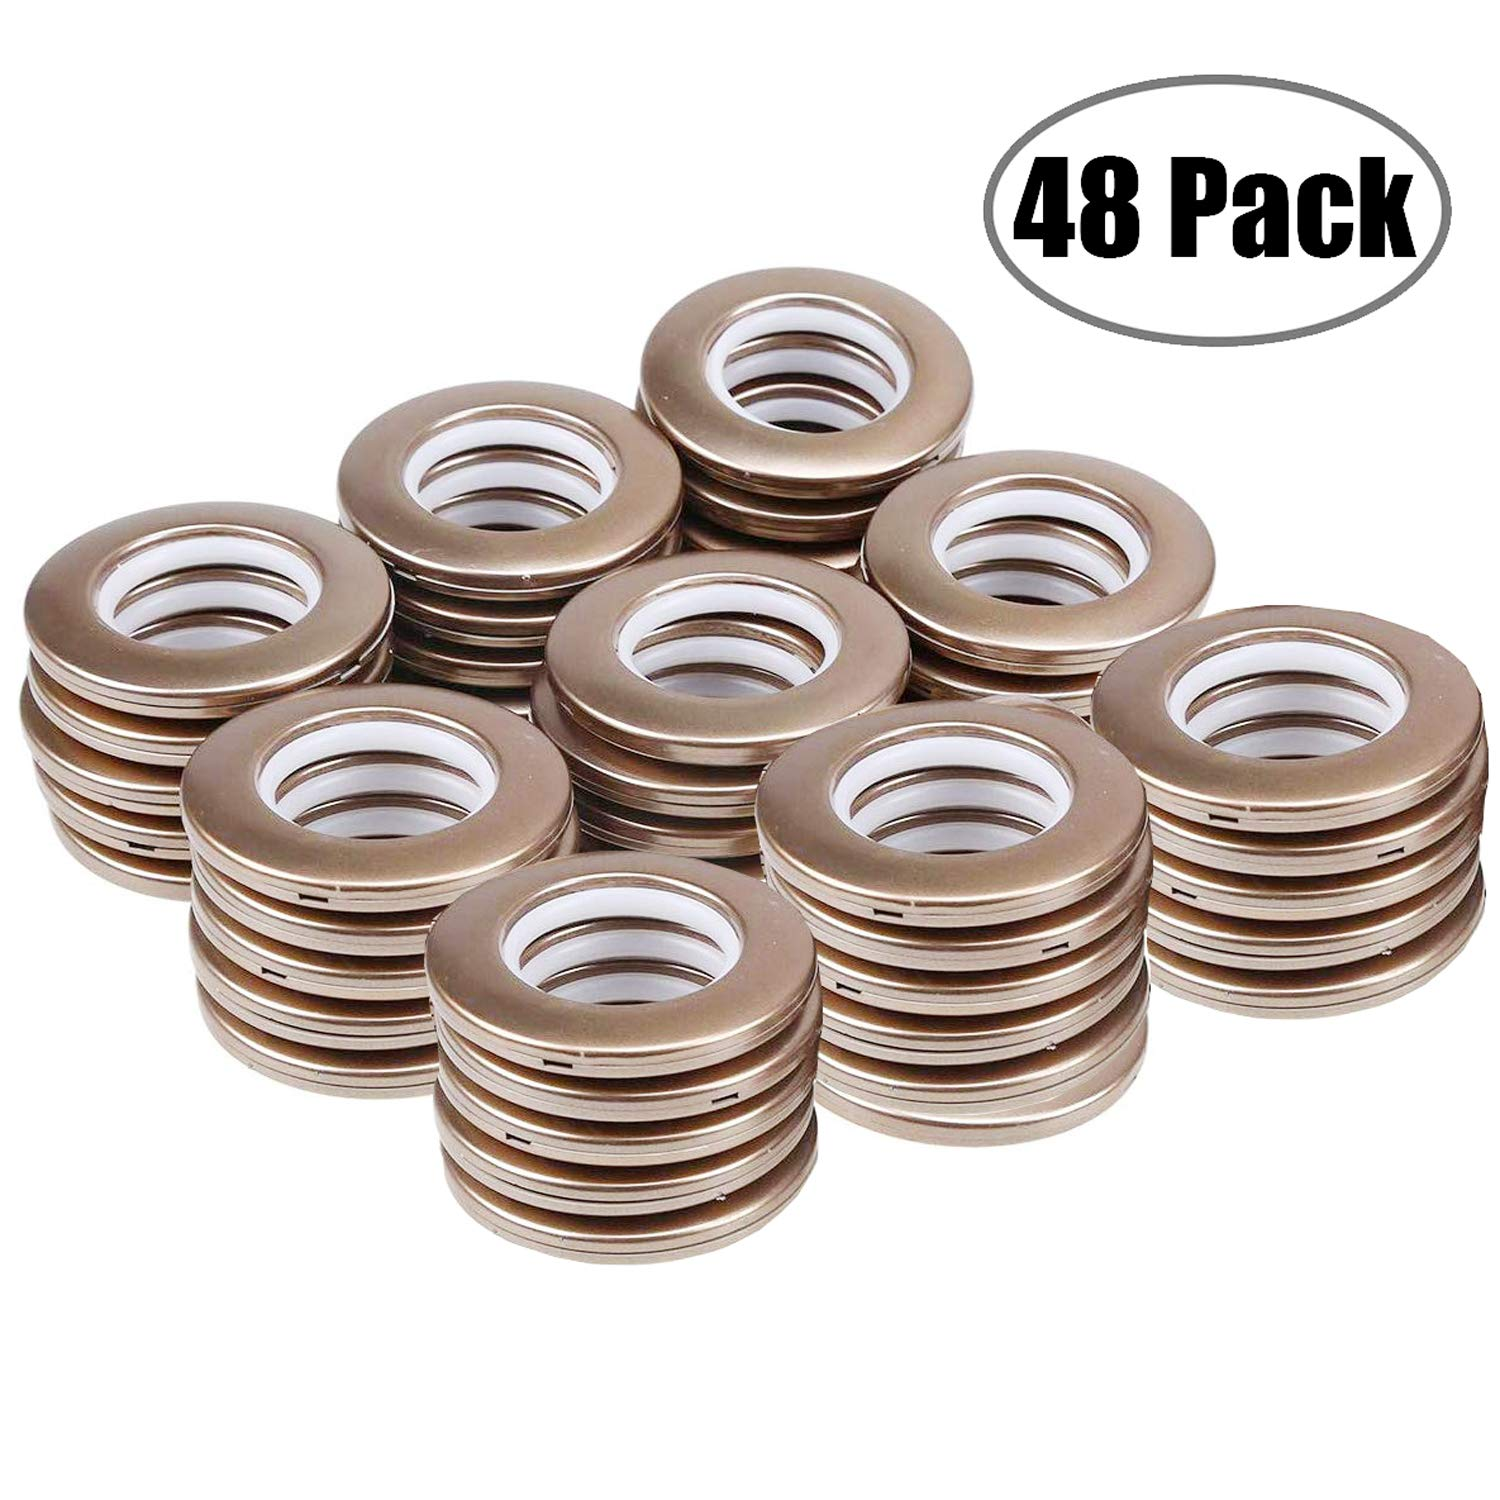 Curtain Grommets 1-9/16 Inch Inner Diameter Curtain Eyelet Ring Brown 48 Pairs by LANDGOO